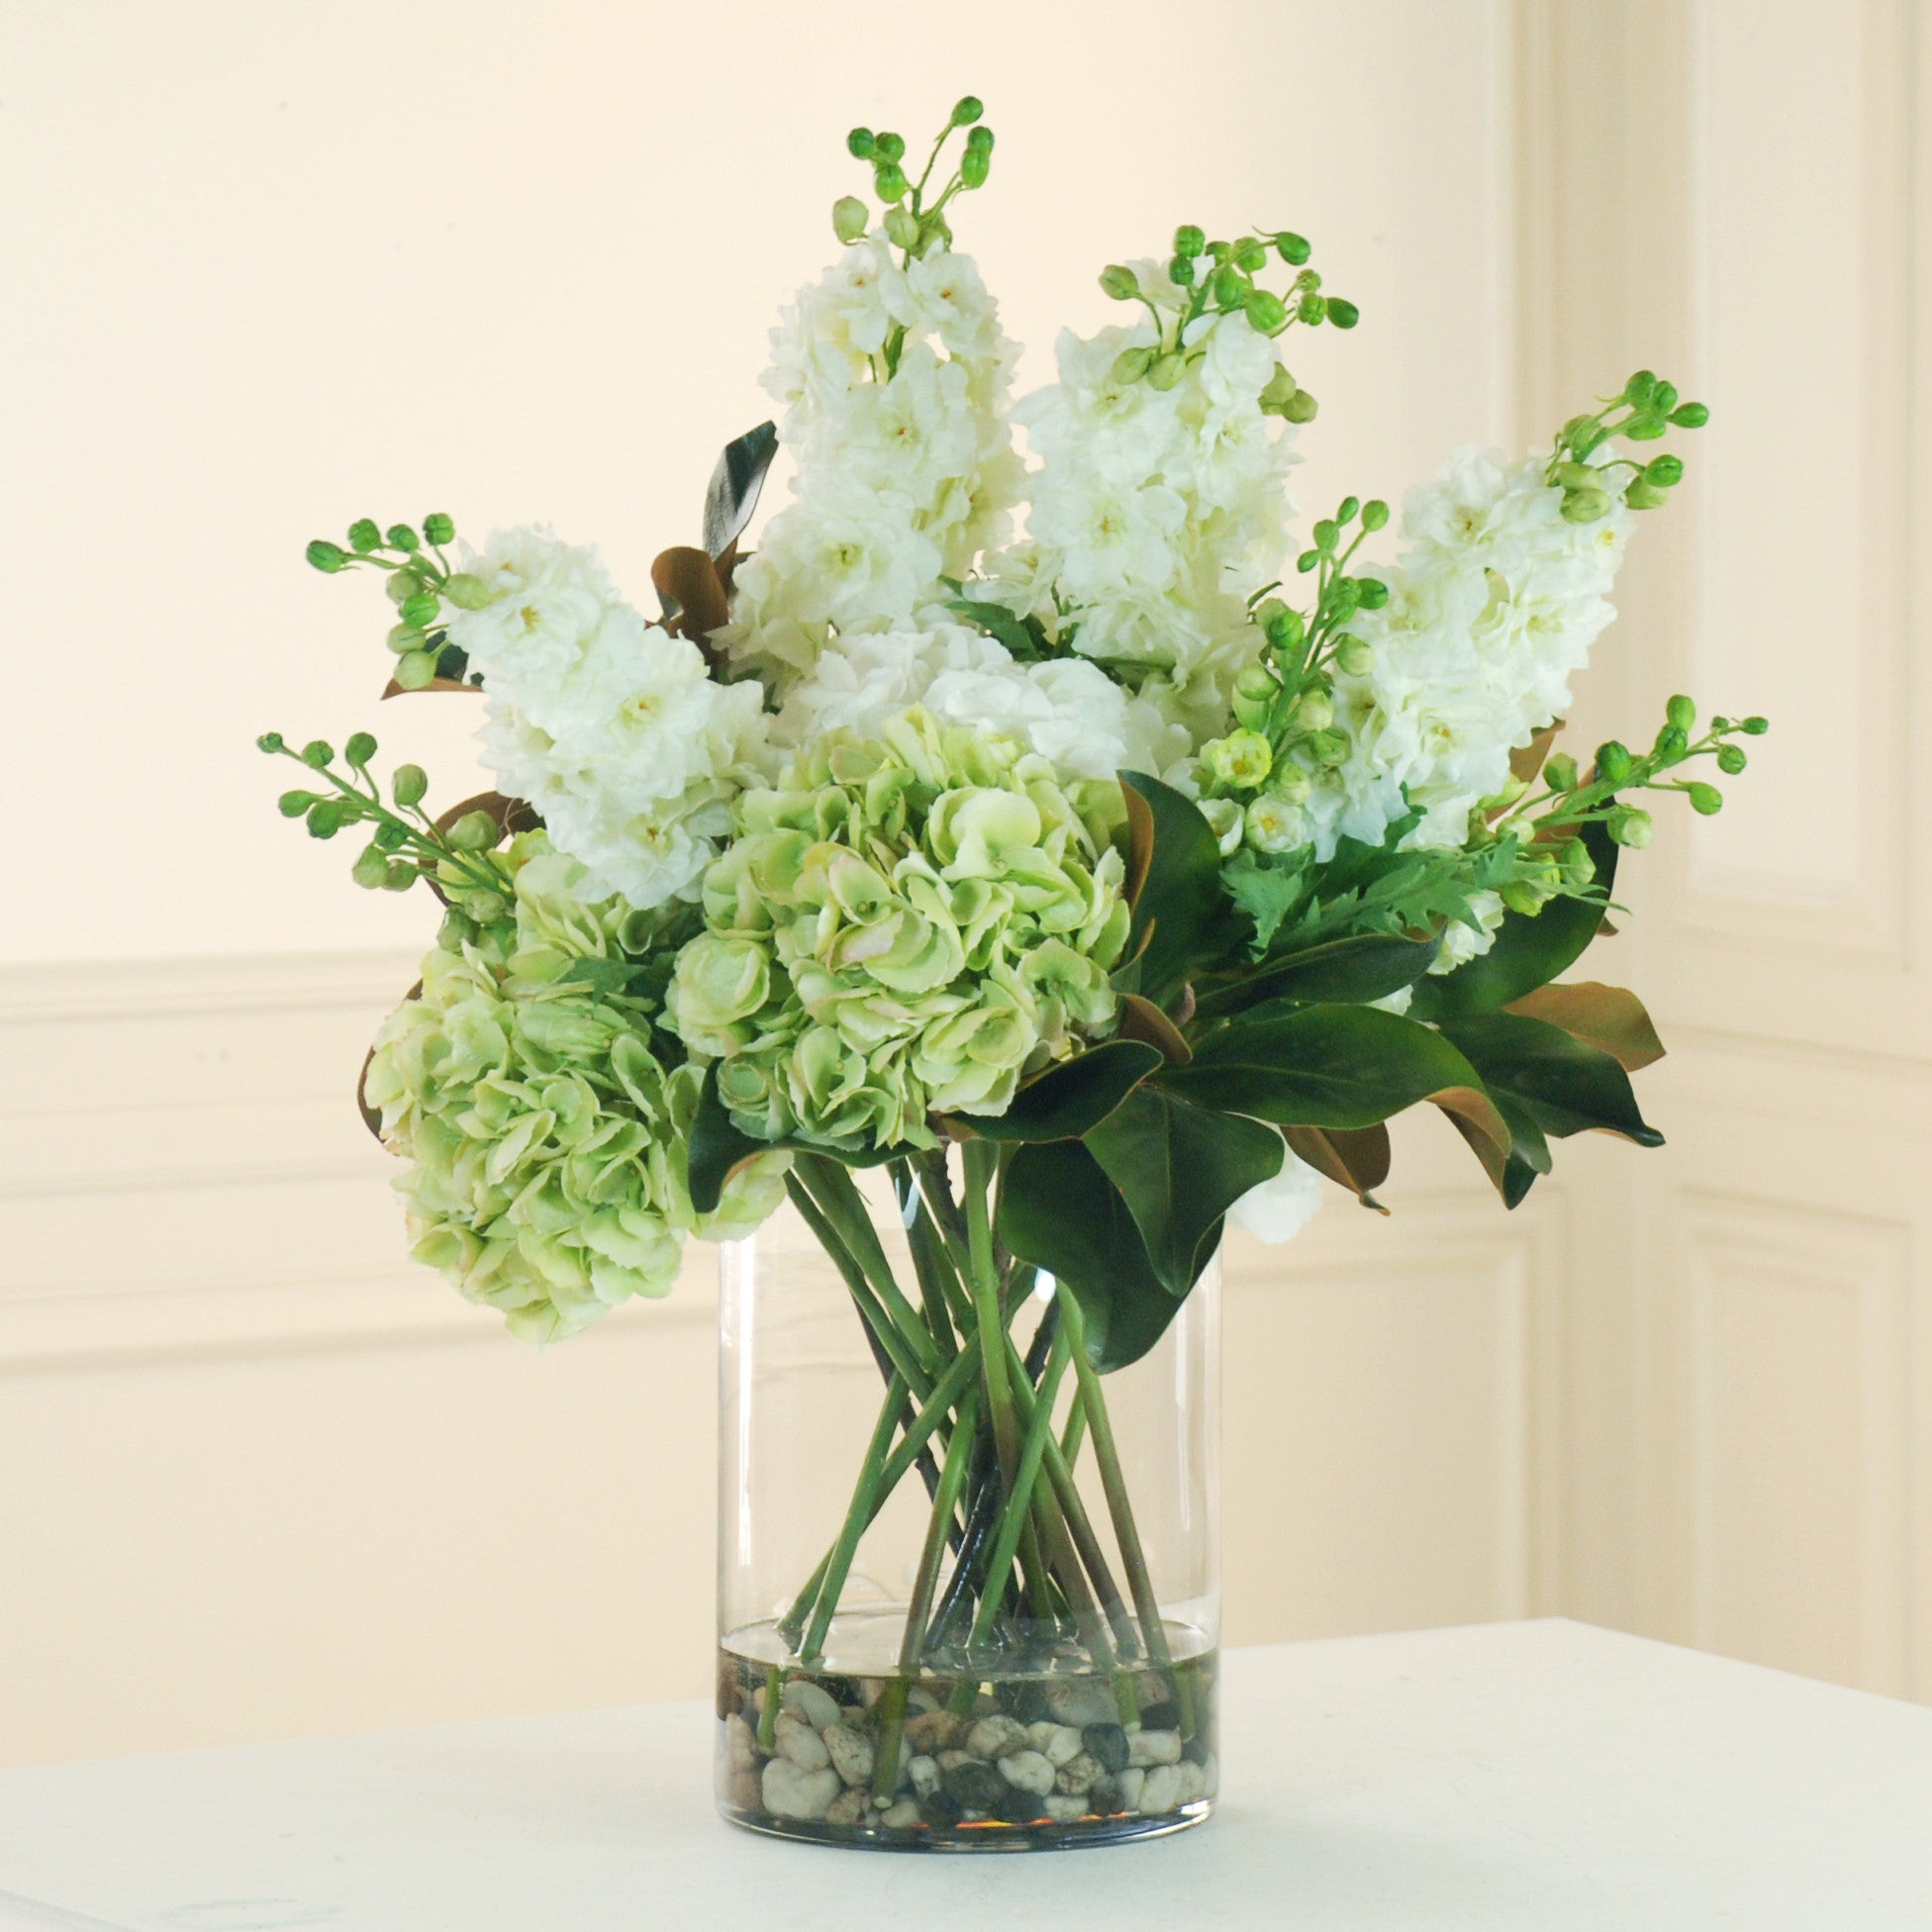 HYDRANGEA AND DELPHINIUM IN GLASS (DP713-WHGR) - Winward Home faux floral arrangements